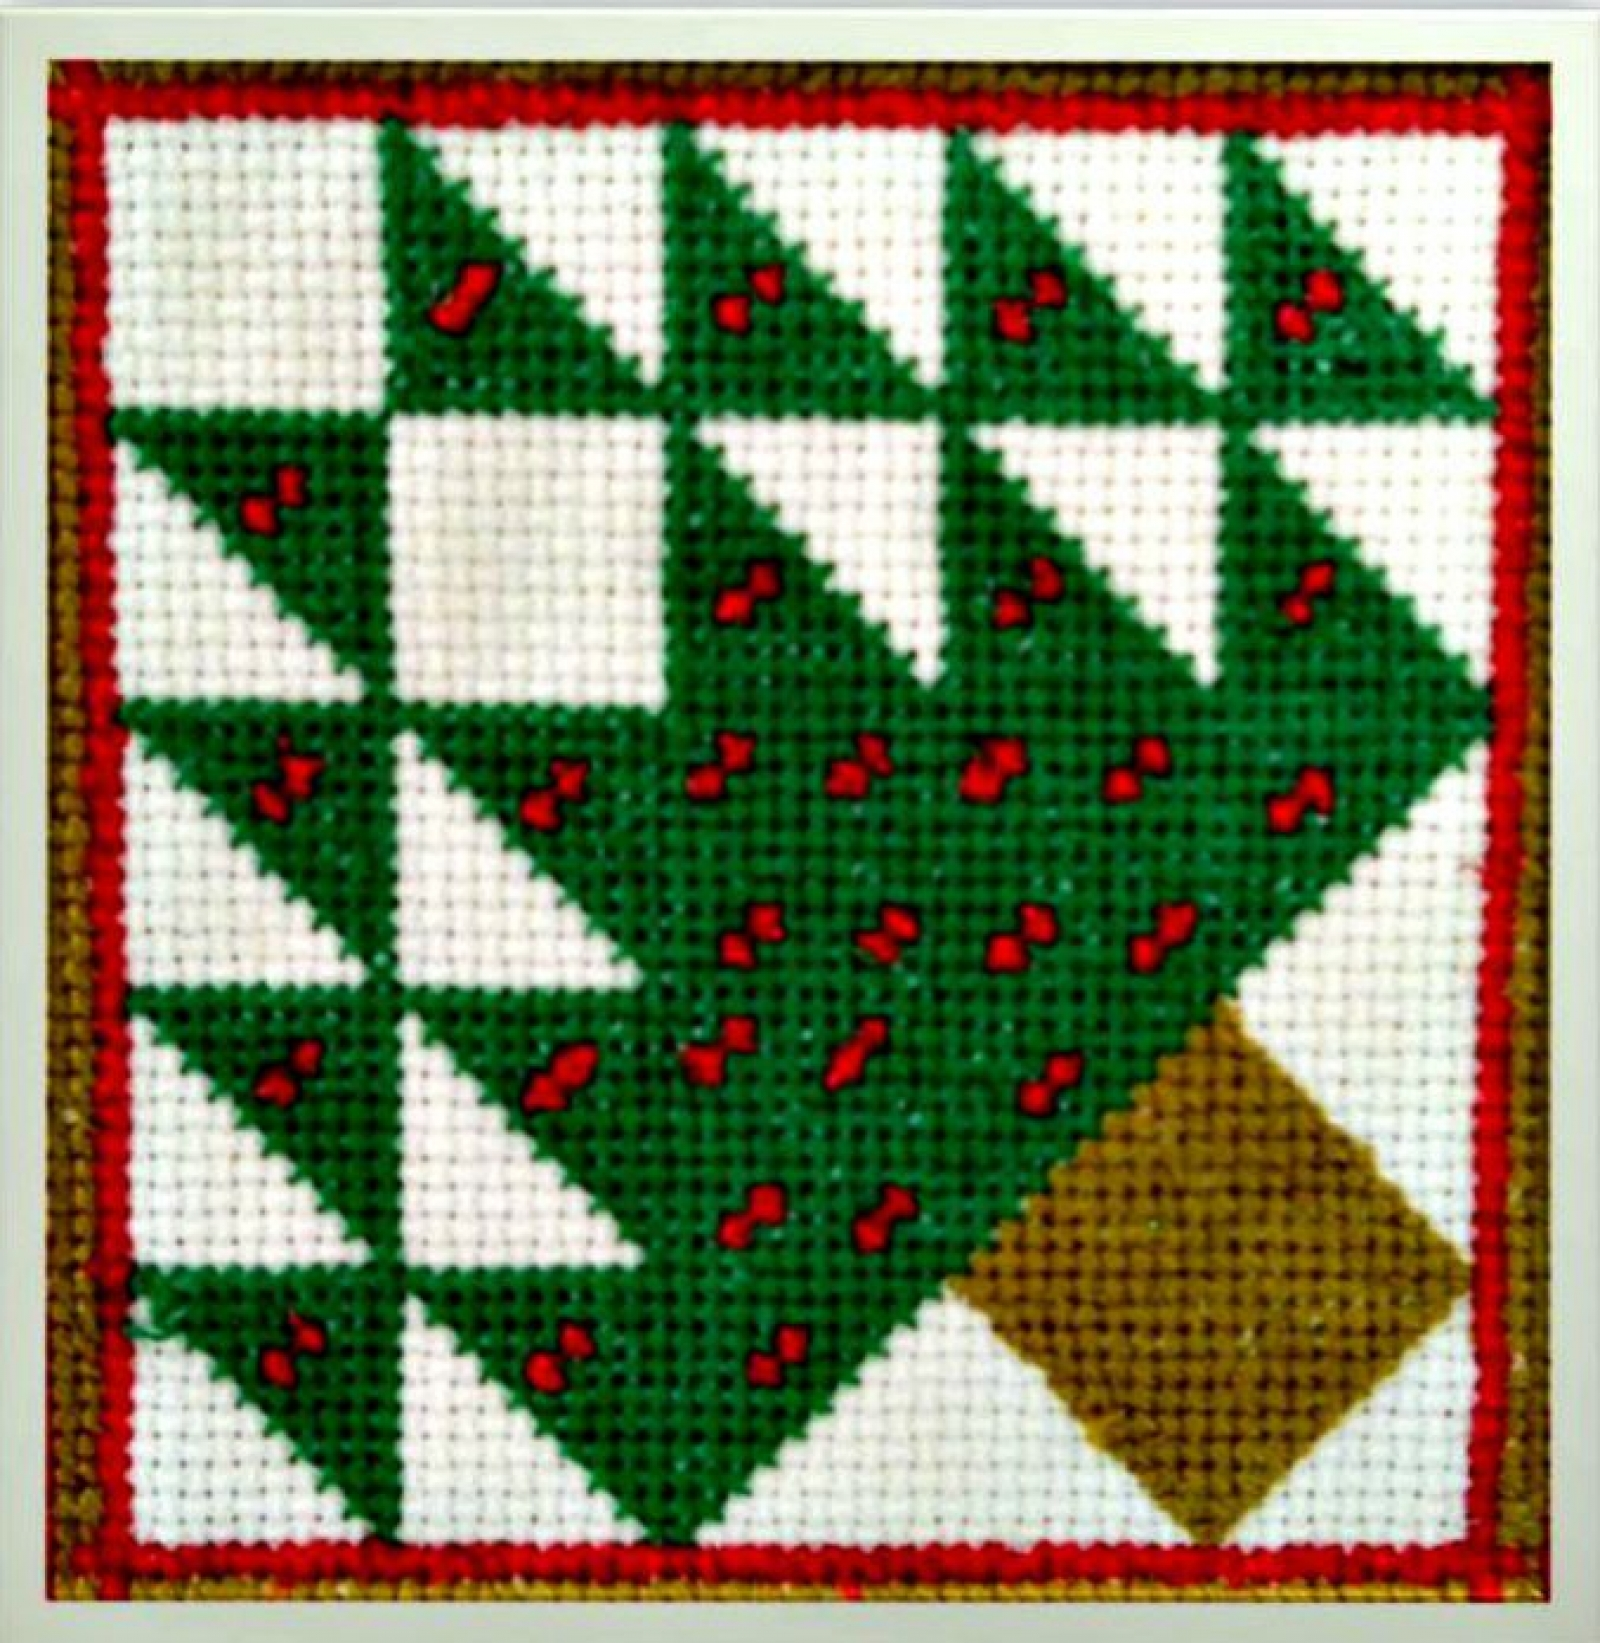 Free Printable Christmas Ornament Cross Stitch Patterns.Christmas Tree Quilt Block Counted Cross Stitch Pattern Pdf Instant Download